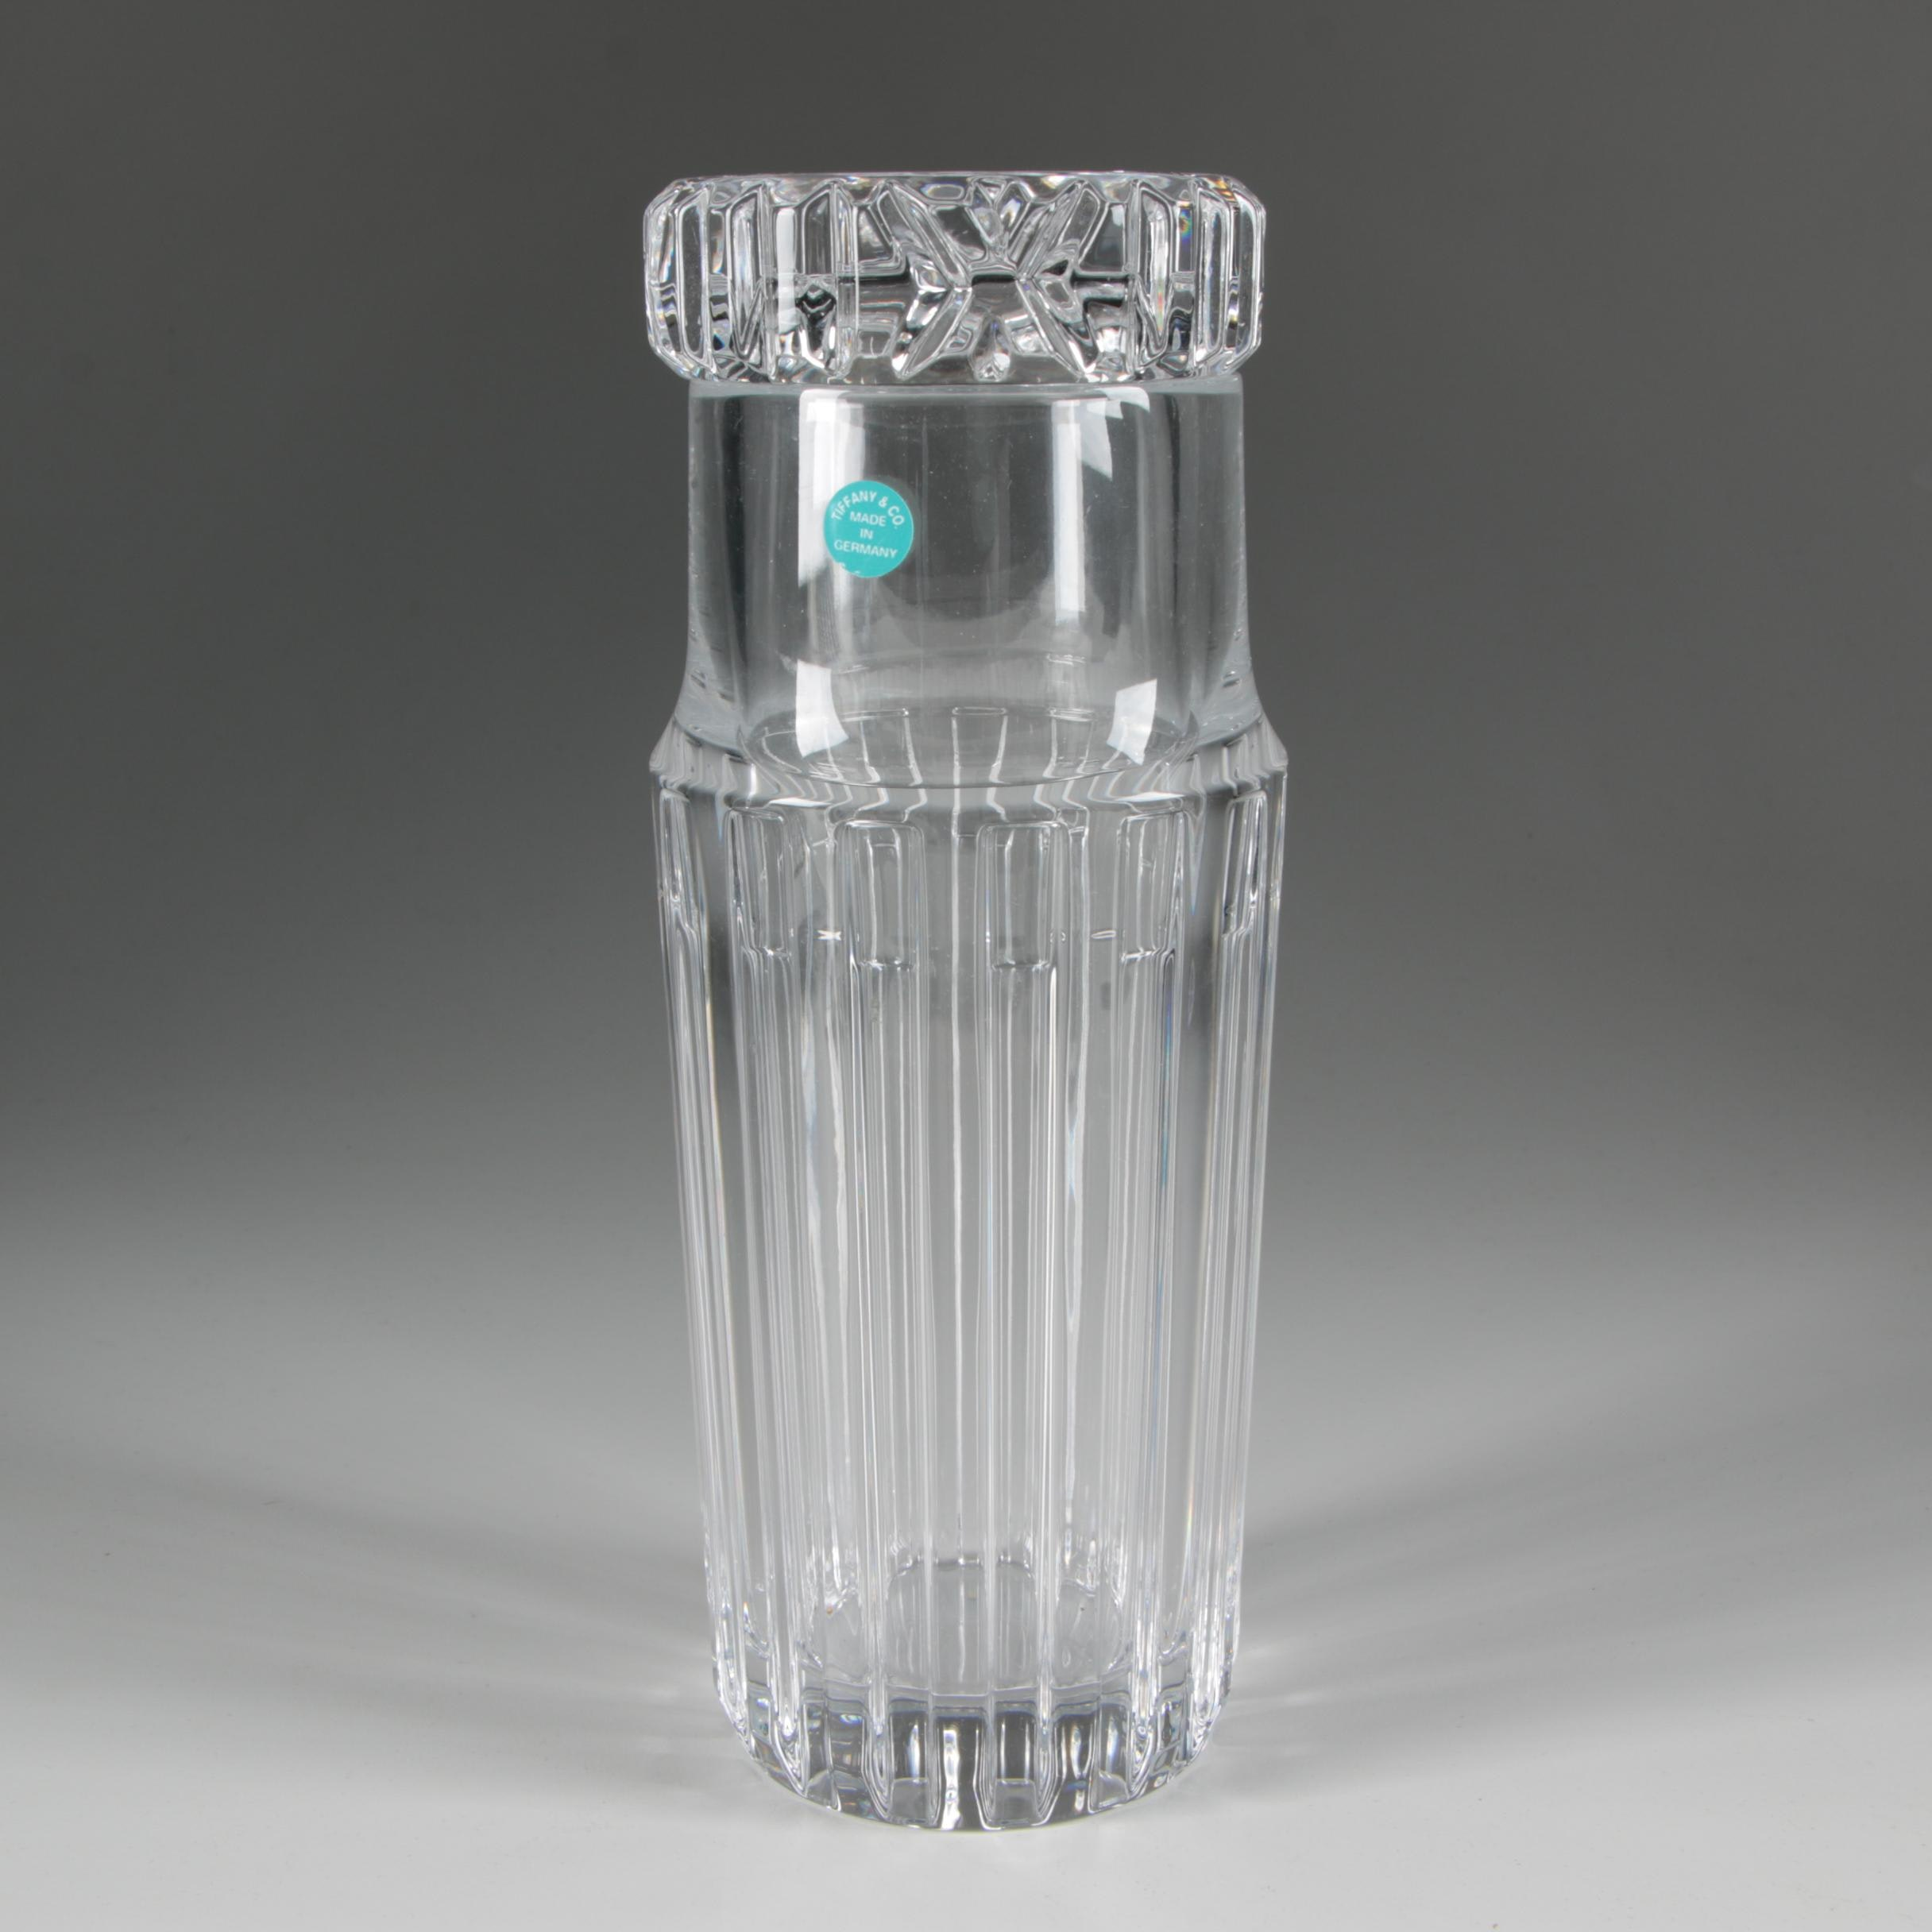 Tiffany & Co. Crystal Cocktail Shaker